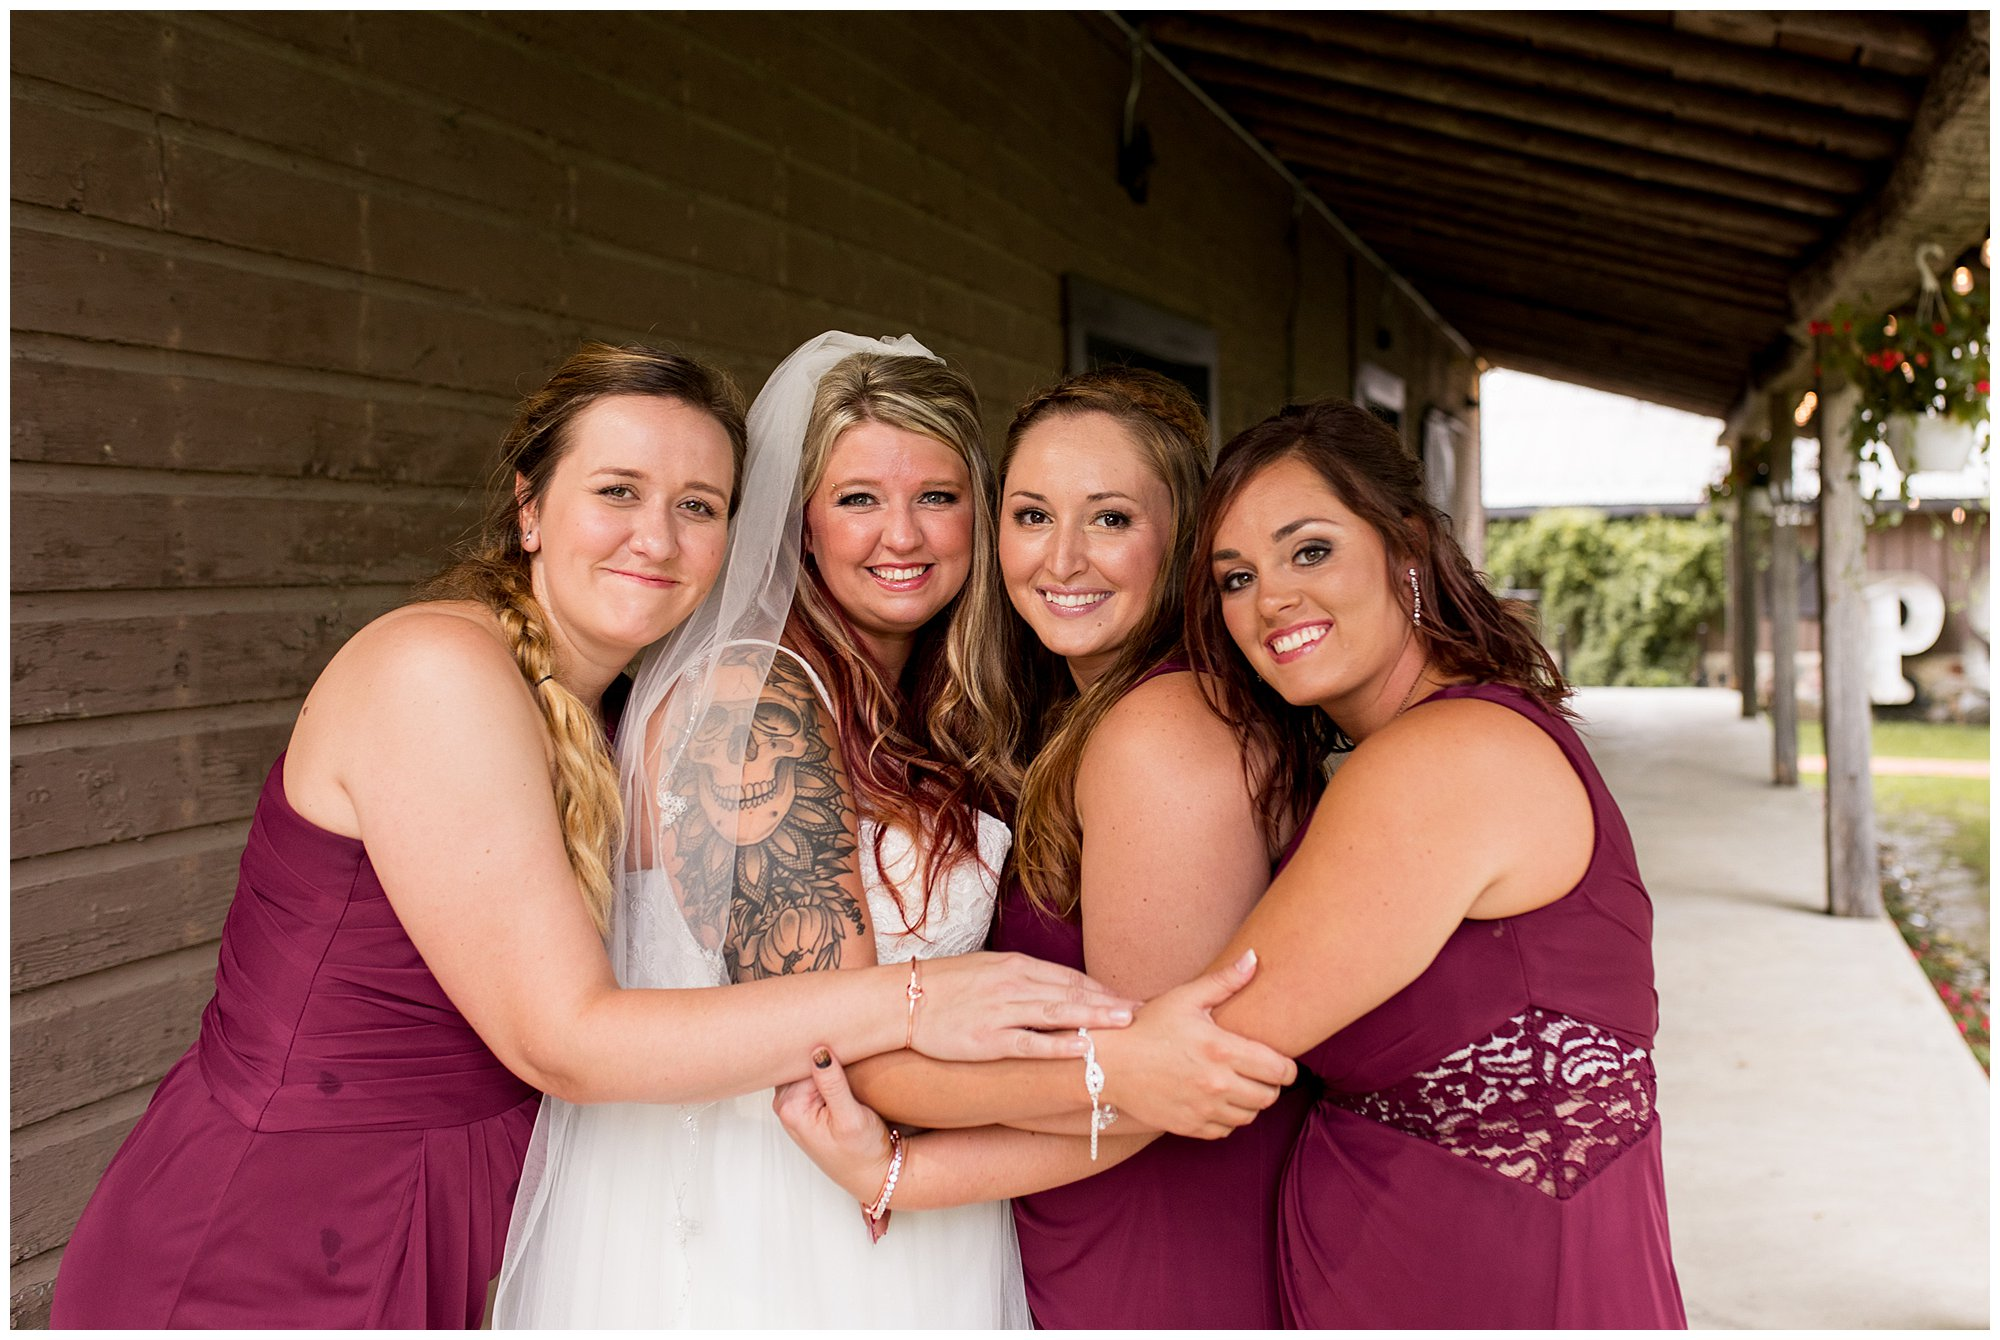 bride and bridesmaids before wedding ceremony at The Old Mill Village in Fremont Indiana